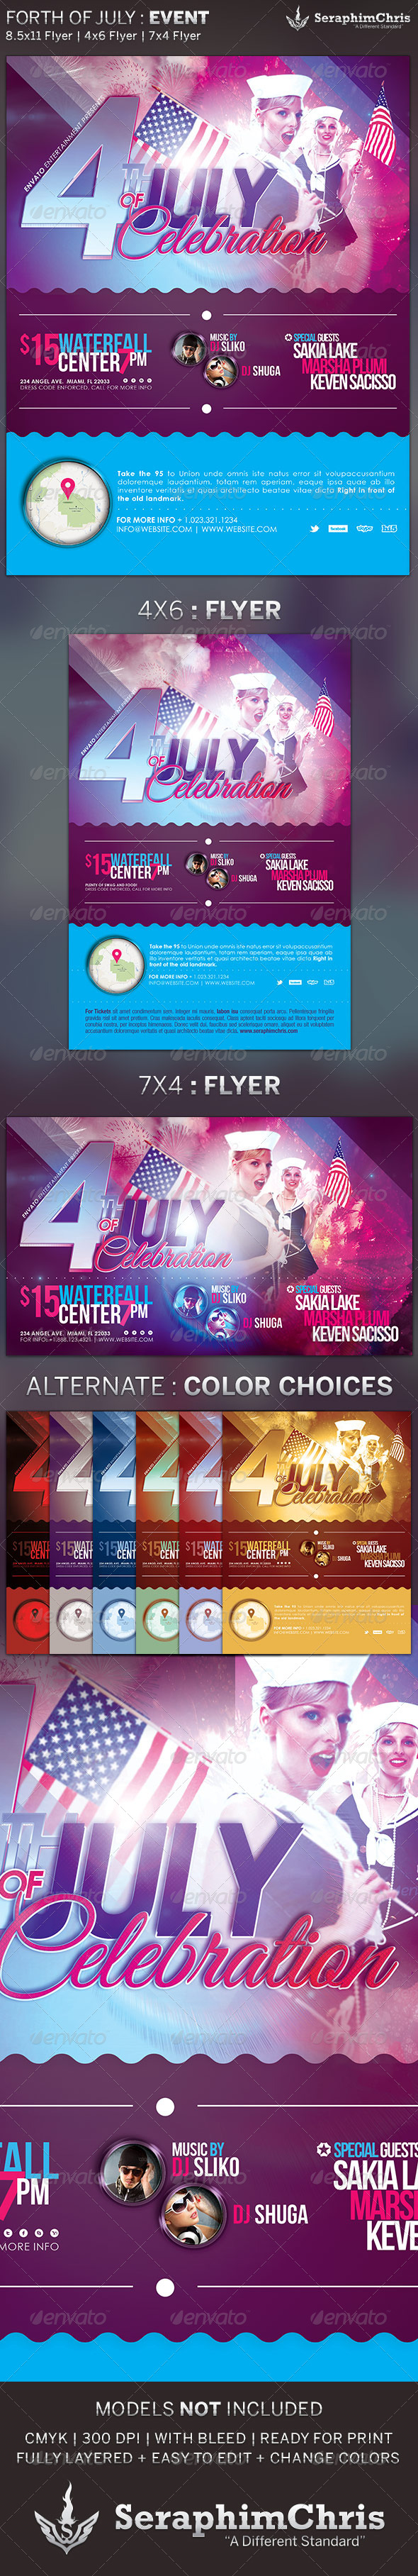 Fourth of July Celebration: Event Flyer Template - Events Flyers